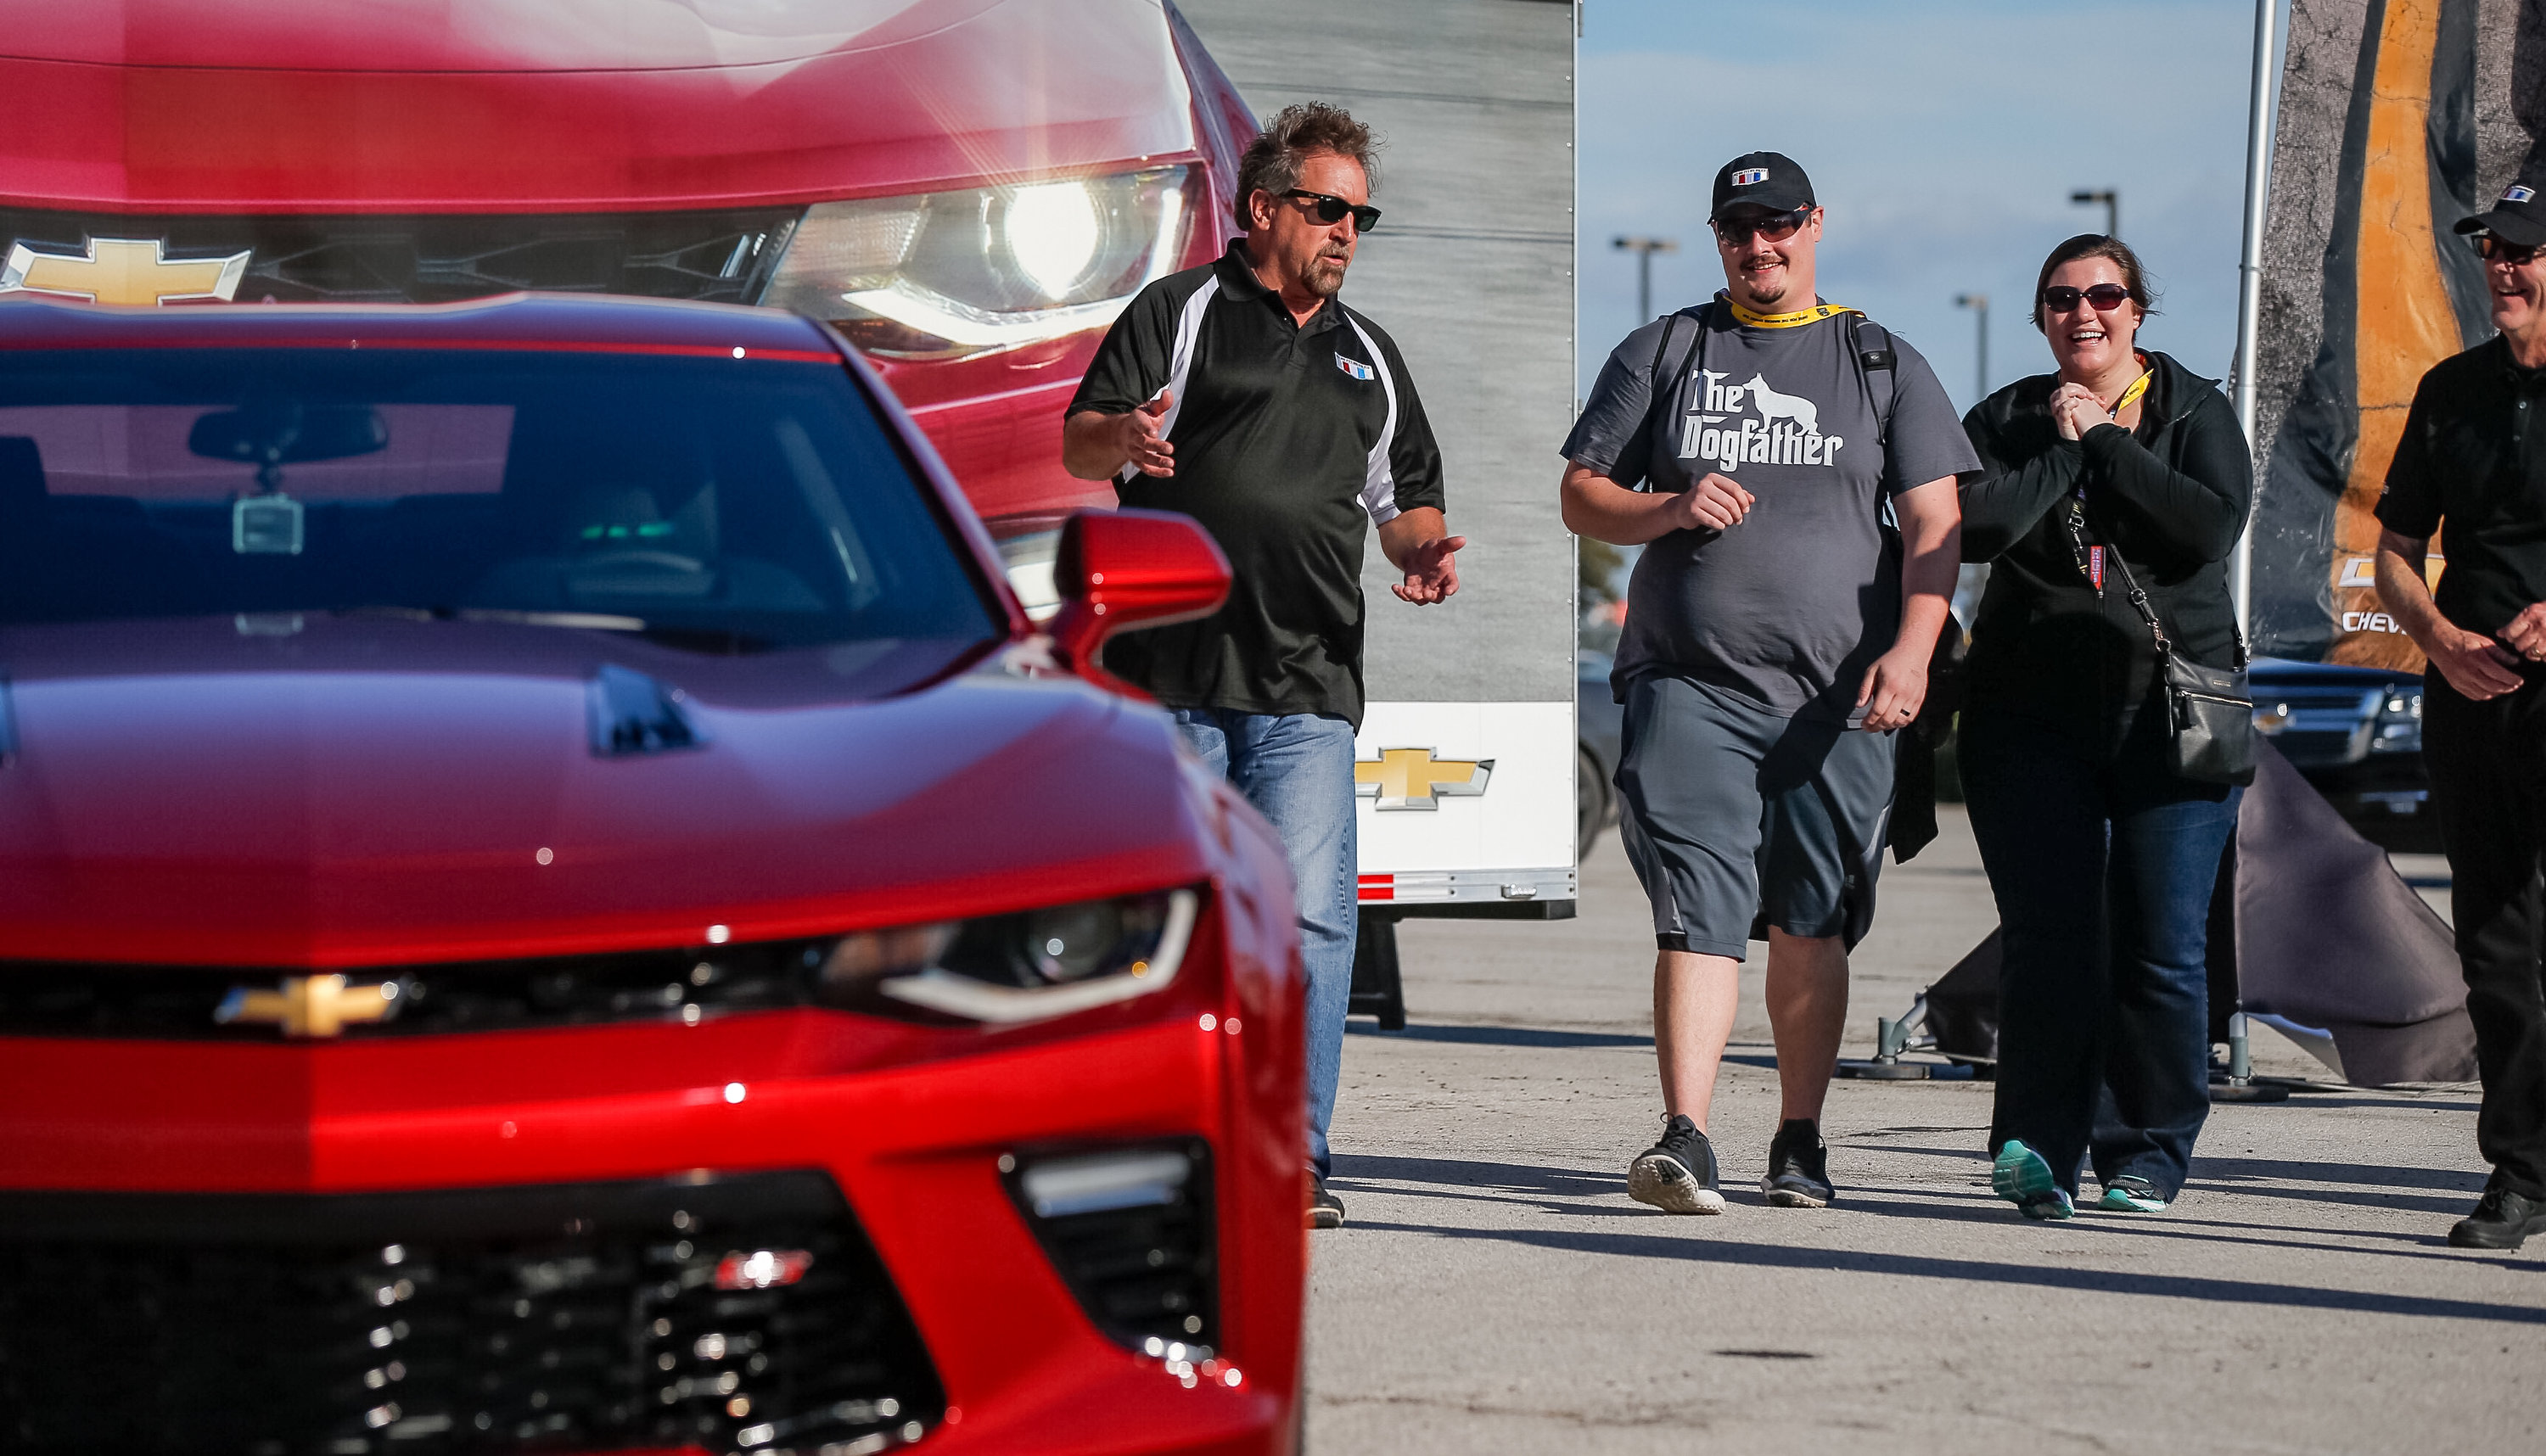 "Chevrolet Camaro Chief Engineer Al Oppenheiser (left) and Camaro Design Director Tom Peters (right) walk Alican ""Turk"" Boyacioglu of Wichita, Kansas and his wife Michelle to the first sixth-generation Chevrolet Camaro Saturday, November 7, 2015 in Dallas, Texas. Team Chevy race driver Danica Patrick surprises Boyacioglu by handing him the keys to the vehicle that he ordered through the Huffiness Chevrolet dealership in Dallas. The first wave of Camaro production models has begun shipping and should arrive at dealerships for customer delivery by mid-November. (Photo by Brandon Wade for Chevrolet)"